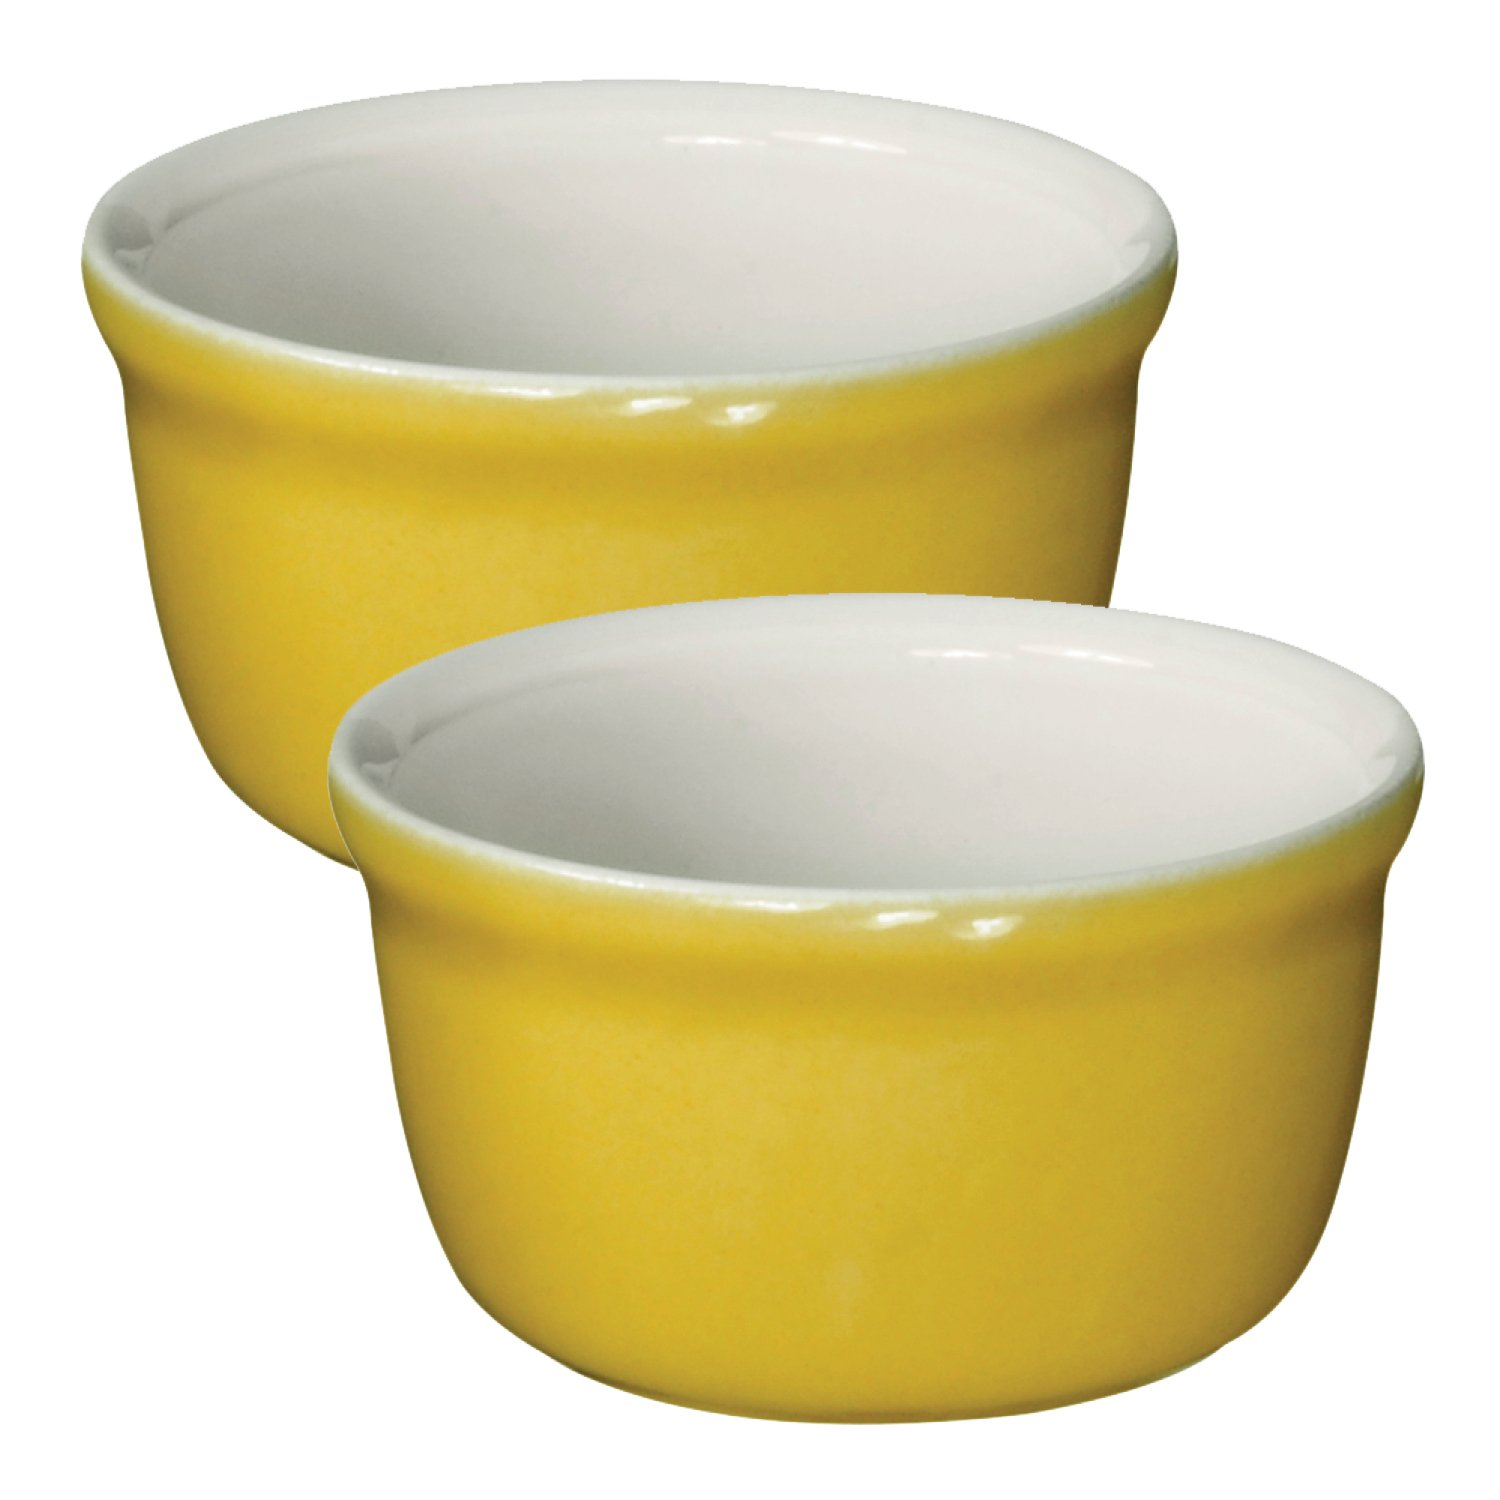 Emile Henry Made In France HR Modern Classics 2 Set Ramekin, Yellow